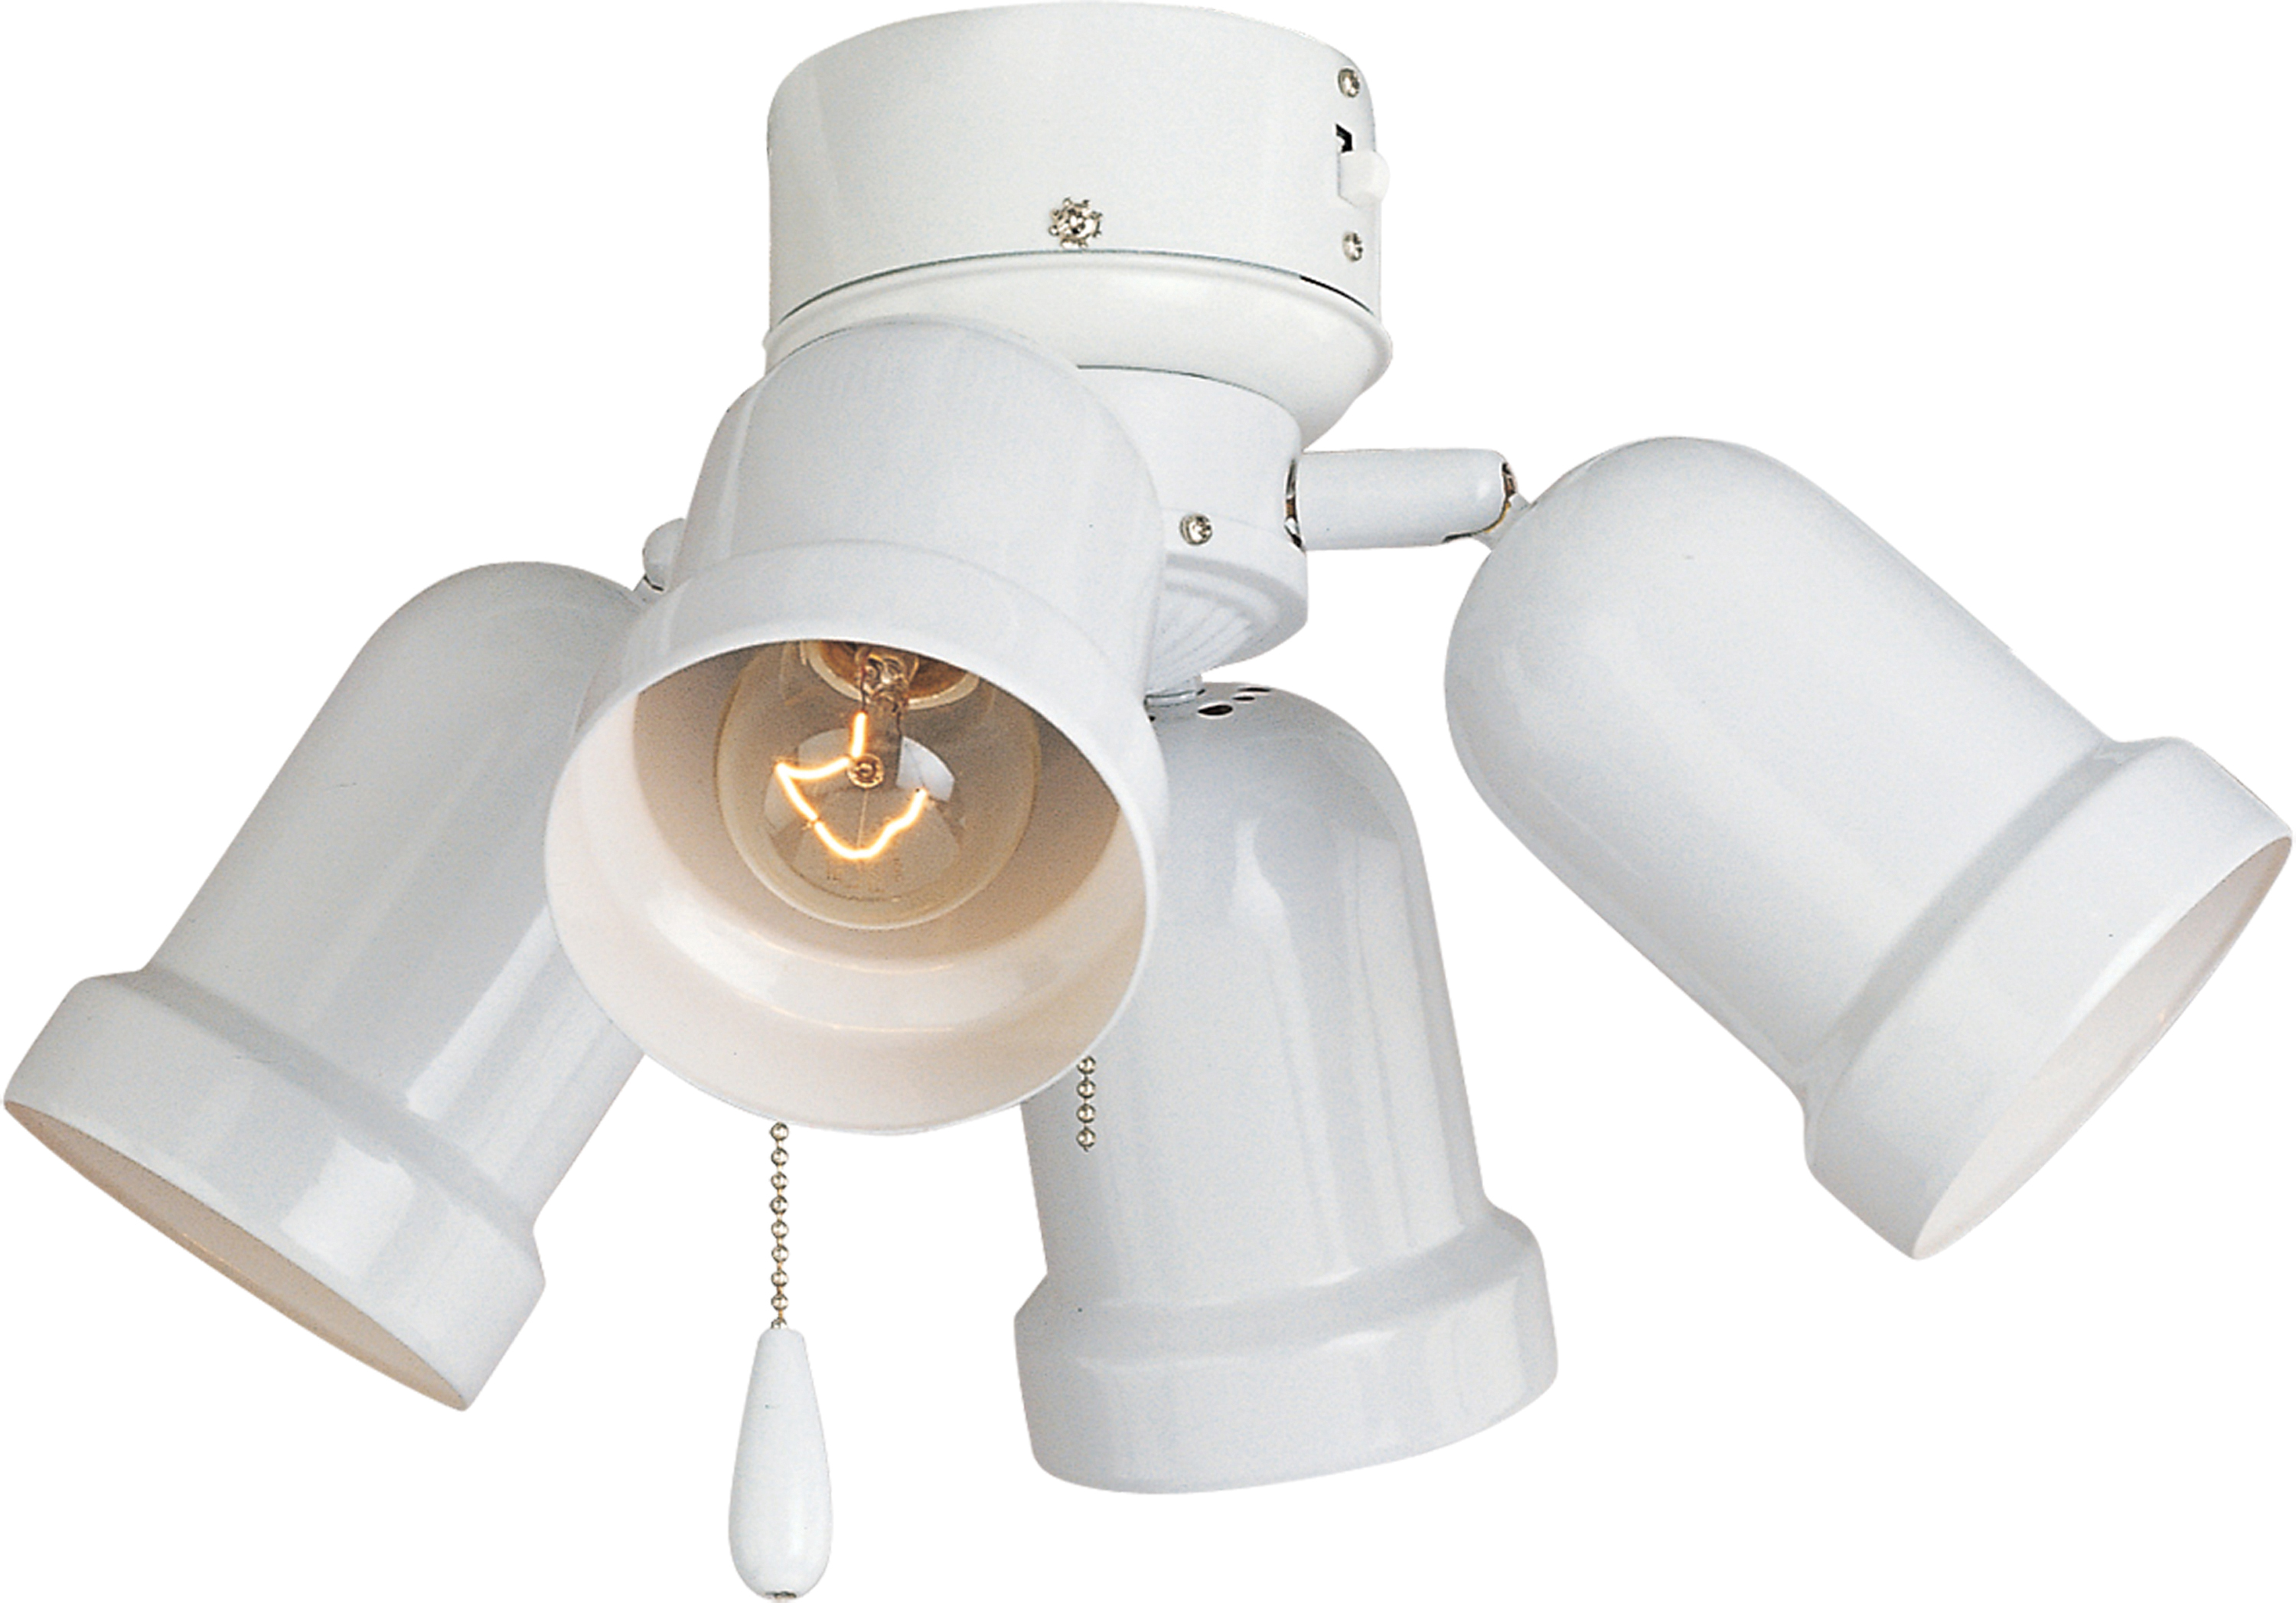 Ceiling Fan Light Kit 4 Bulb : Light ceiling fan kit